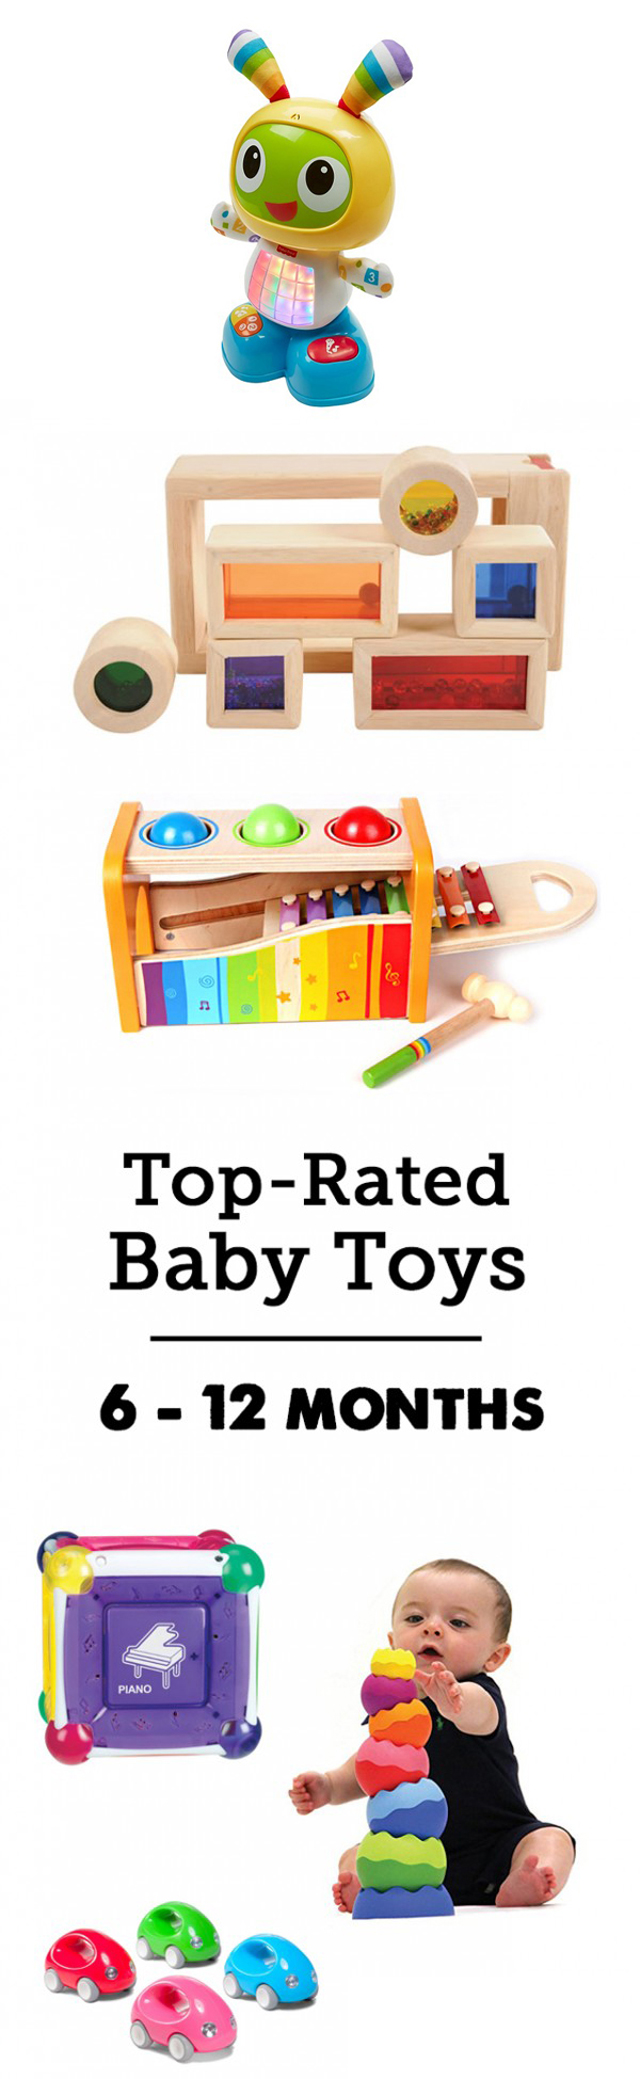 Top Toys For 12 Months : Mpmk gift guide glimpse best gifts for month olds